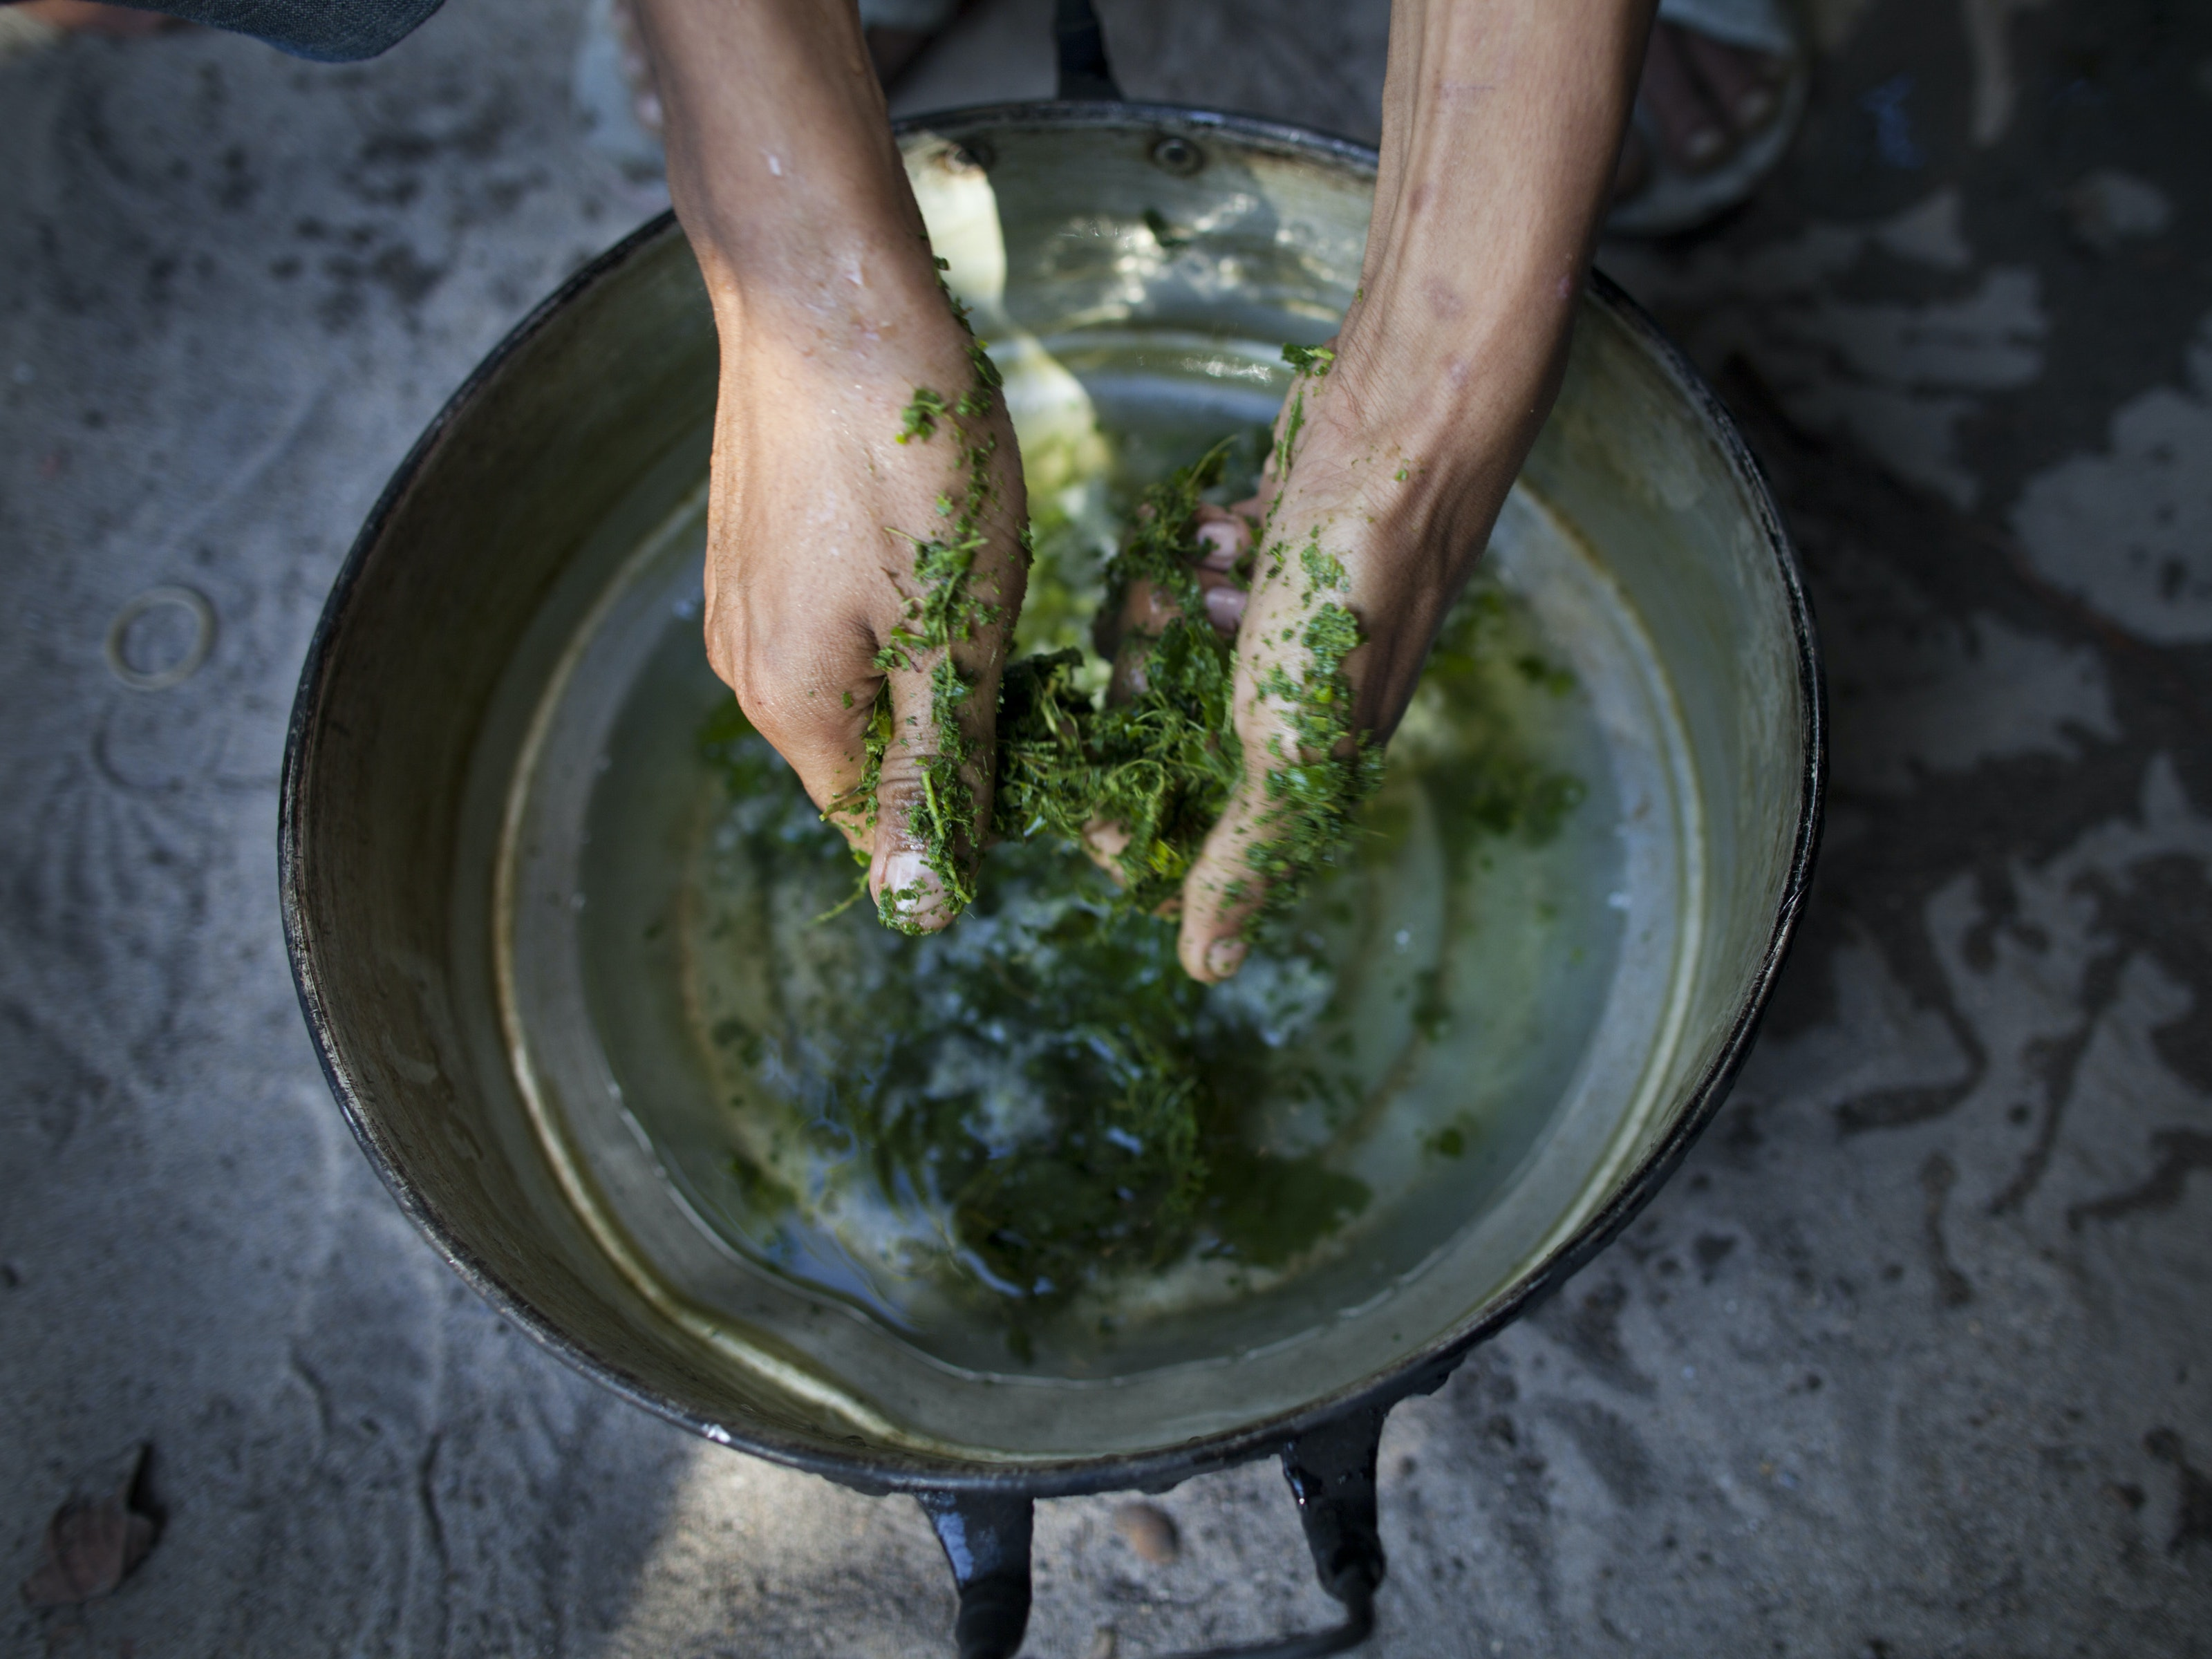 NARWATHIWAT,THAILAND - SEPTEMBER 1:  A Thai Malay Muslim drug user breaks up the kratom leaf into a pan to form part of a popular cheap narcotic drink called 4 x 100 on September 1, 2011in Narwathiwat, southern Thailand. Translated as ' sii khun roi,' 4 x 100  is a mix of the illegal kratom leaf, cough syrup and Coca-Cola with added ingredients like tranquilizers and marijuana. Many unemployed young ethnic Thai Malay Muslims are becoming more embedded in daily substance abuse and a culture of drugs as they turn to substances such as 4 x 100, marijuana and methamphetamines to cope with daily life. In southern Thailand for the last 6 years there has been almost  daily violence happening over a wide region which has claimed more than 4,000 lives. The on-going, low grade insurgency and violence is between Muslim separatists, and the Thai security forces in a country that is over 95% buddhist.  (Photo by Paula Bronstein/Getty Images)